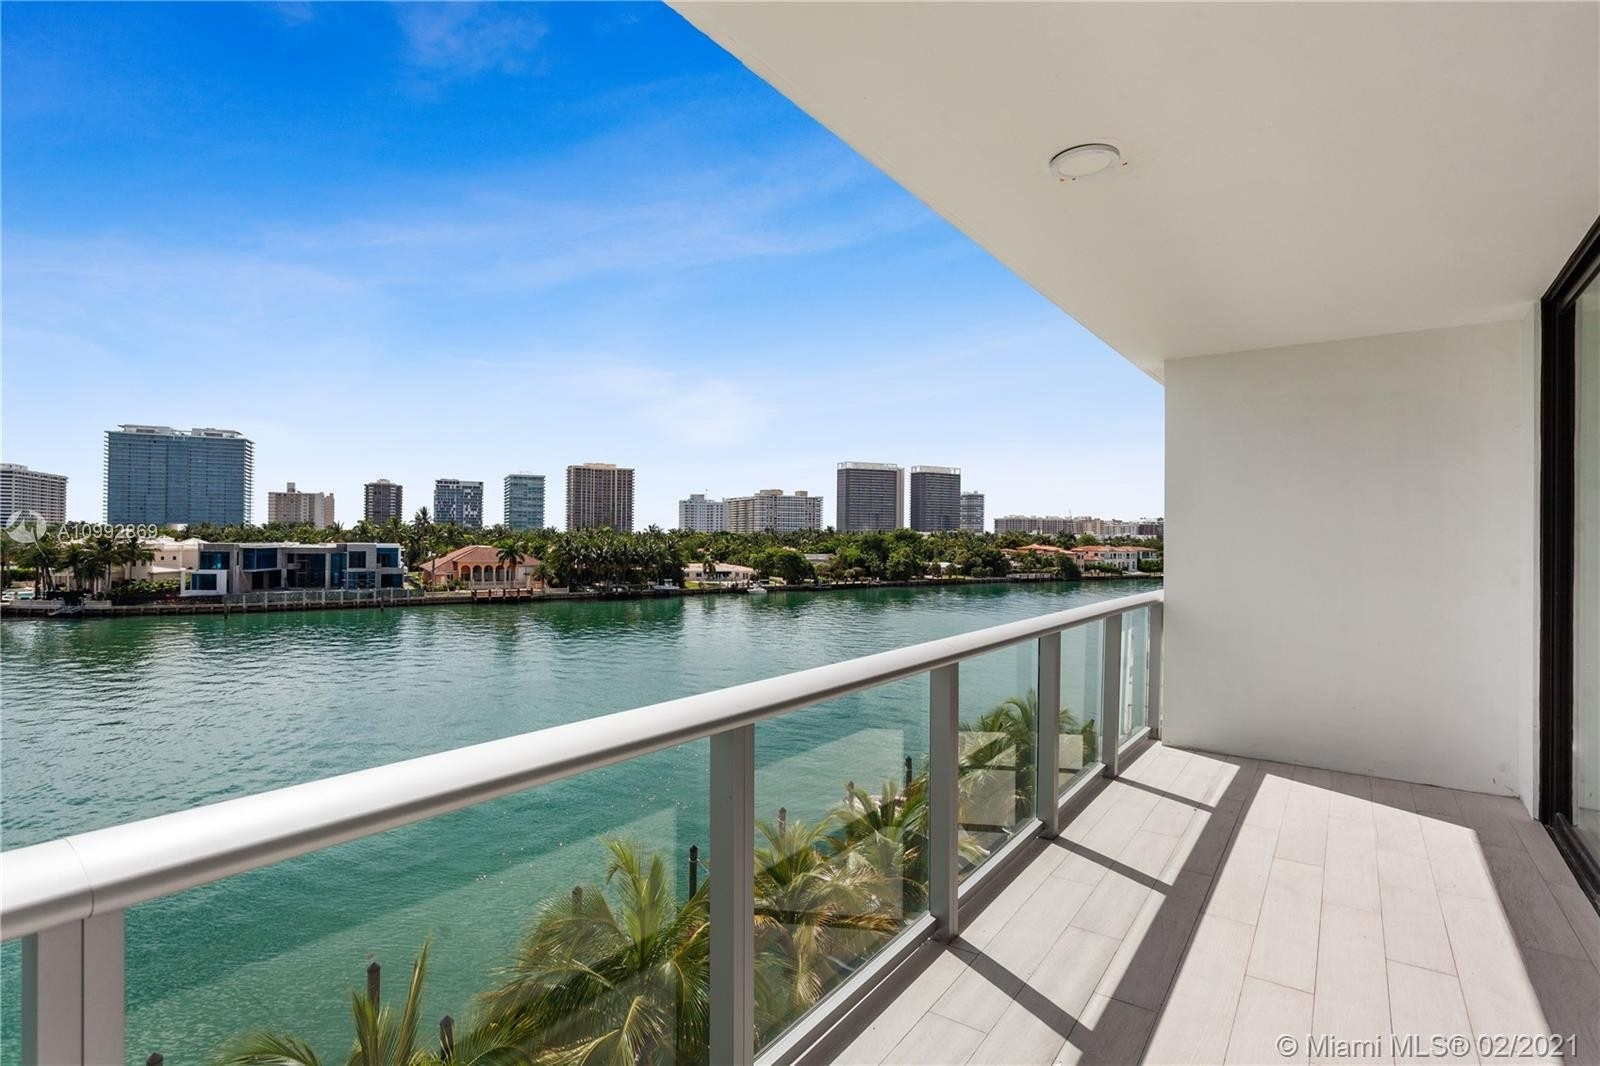 Condominium 為 特賣 在 10201 E Bay Harbor Dr , 401 Bay Harbor Islands, FL 33154